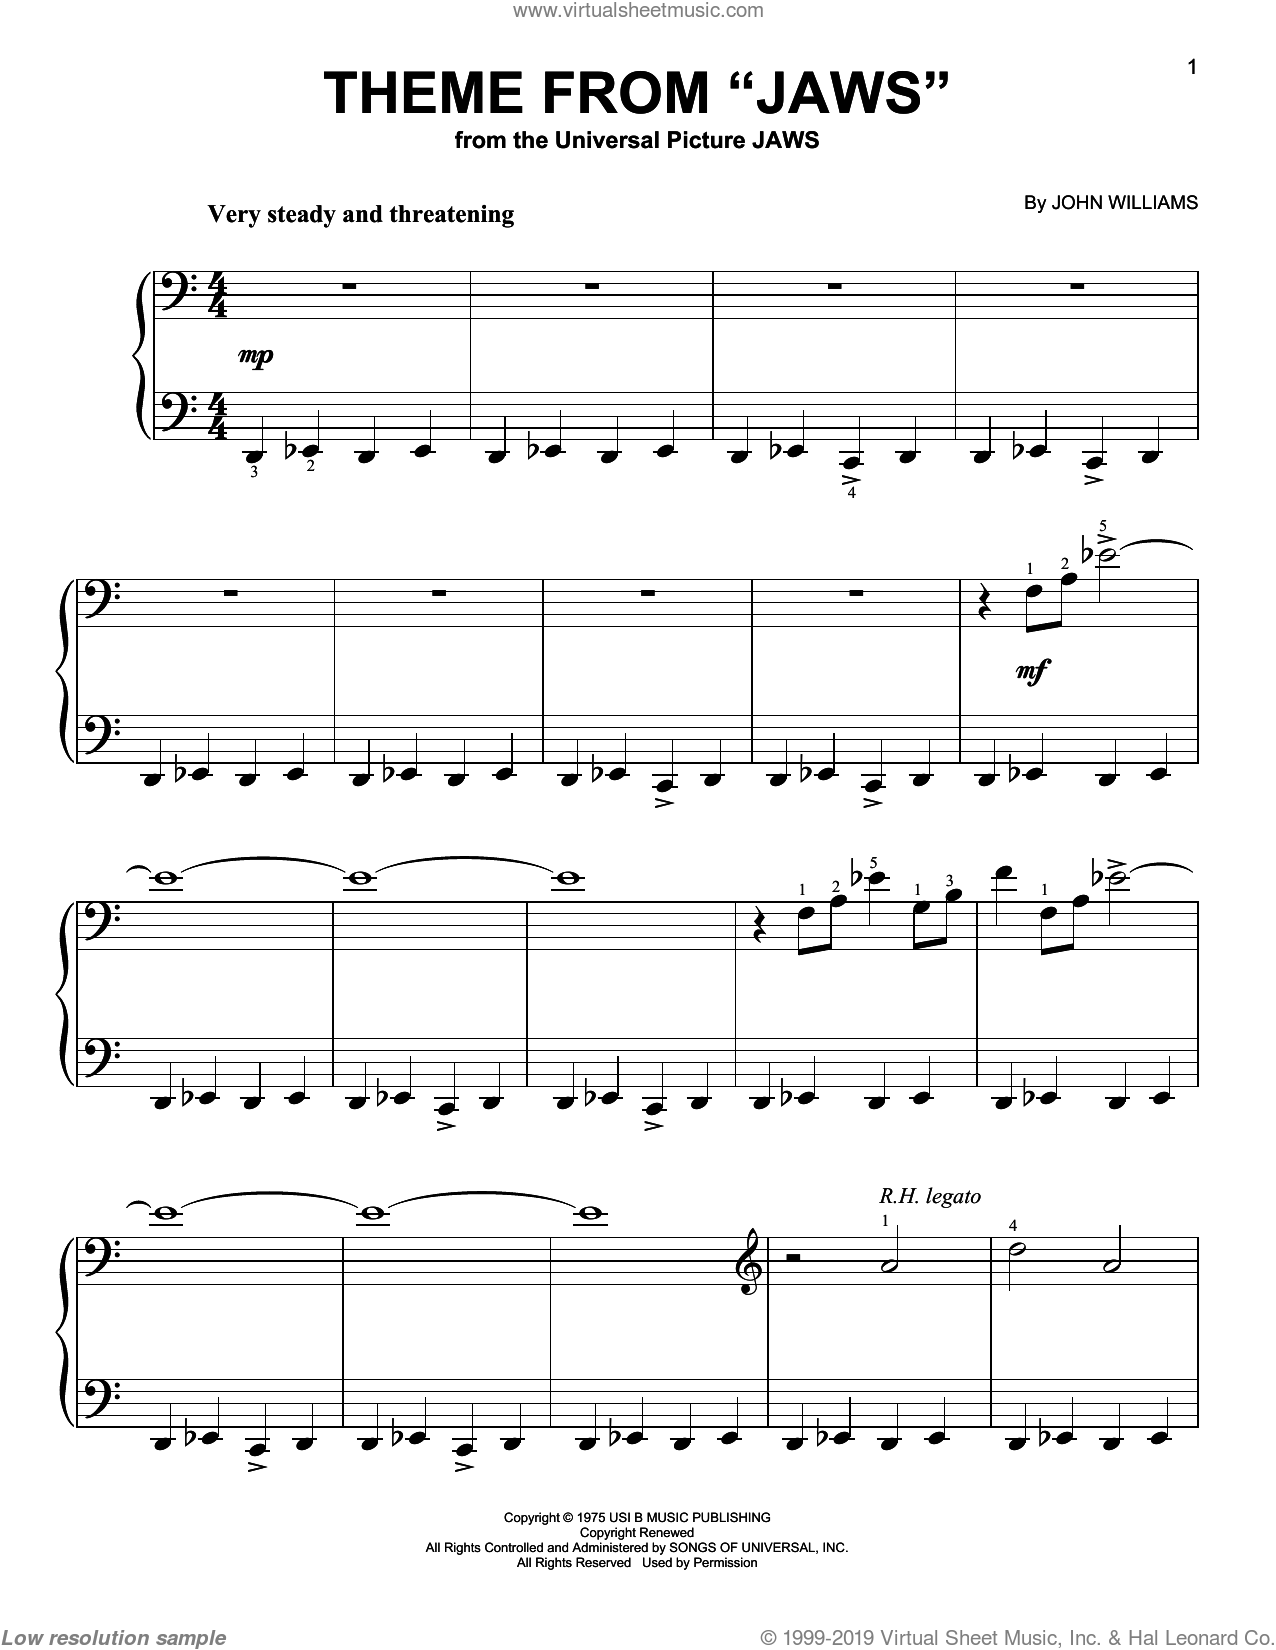 Theme From 'Jaws', (easy) sheet music for piano solo by John Williams, easy skill level